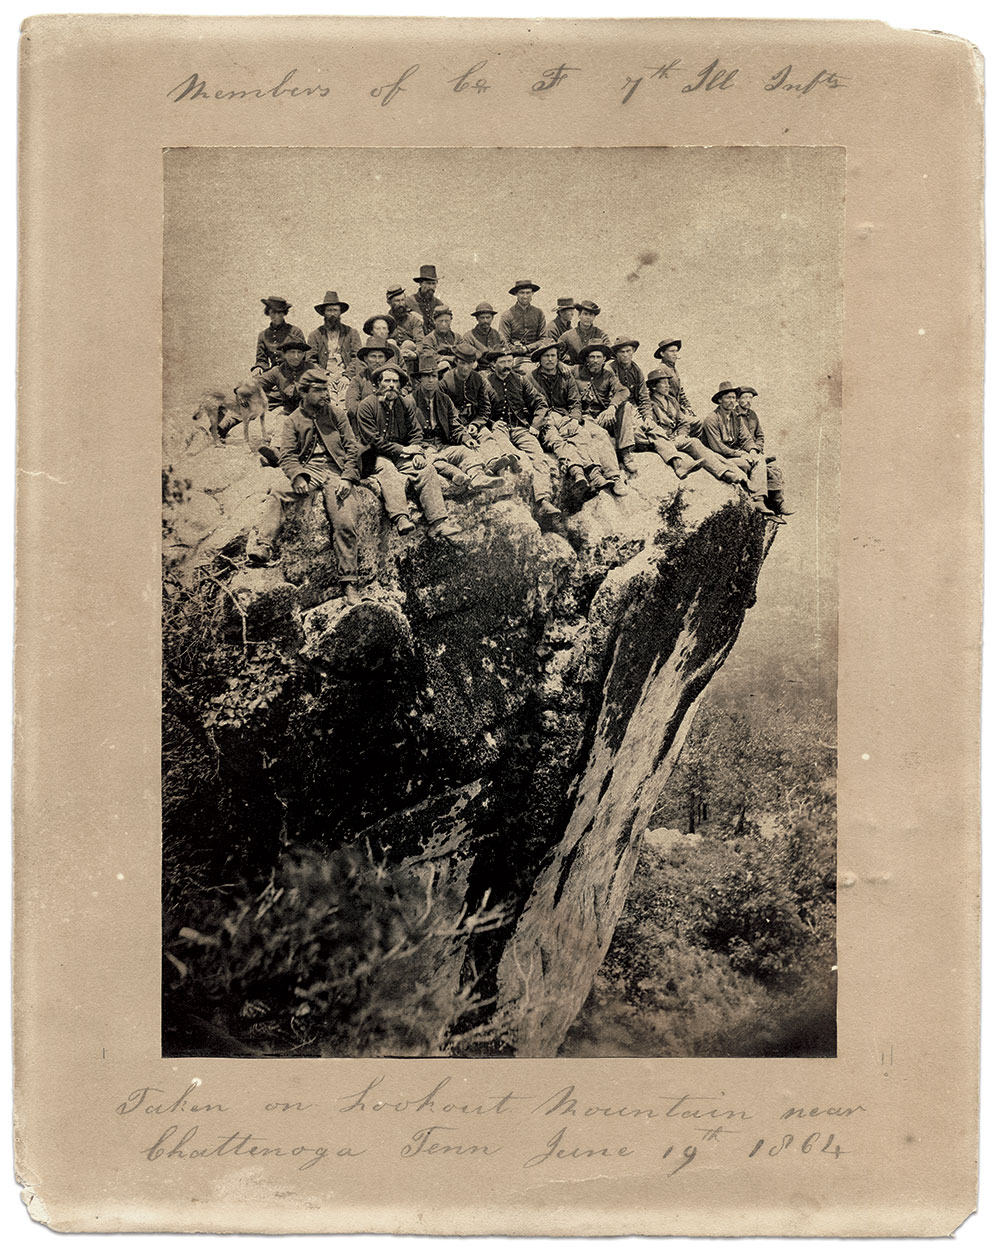 Albumen print from the Dr. Anthony Hodges Collection.